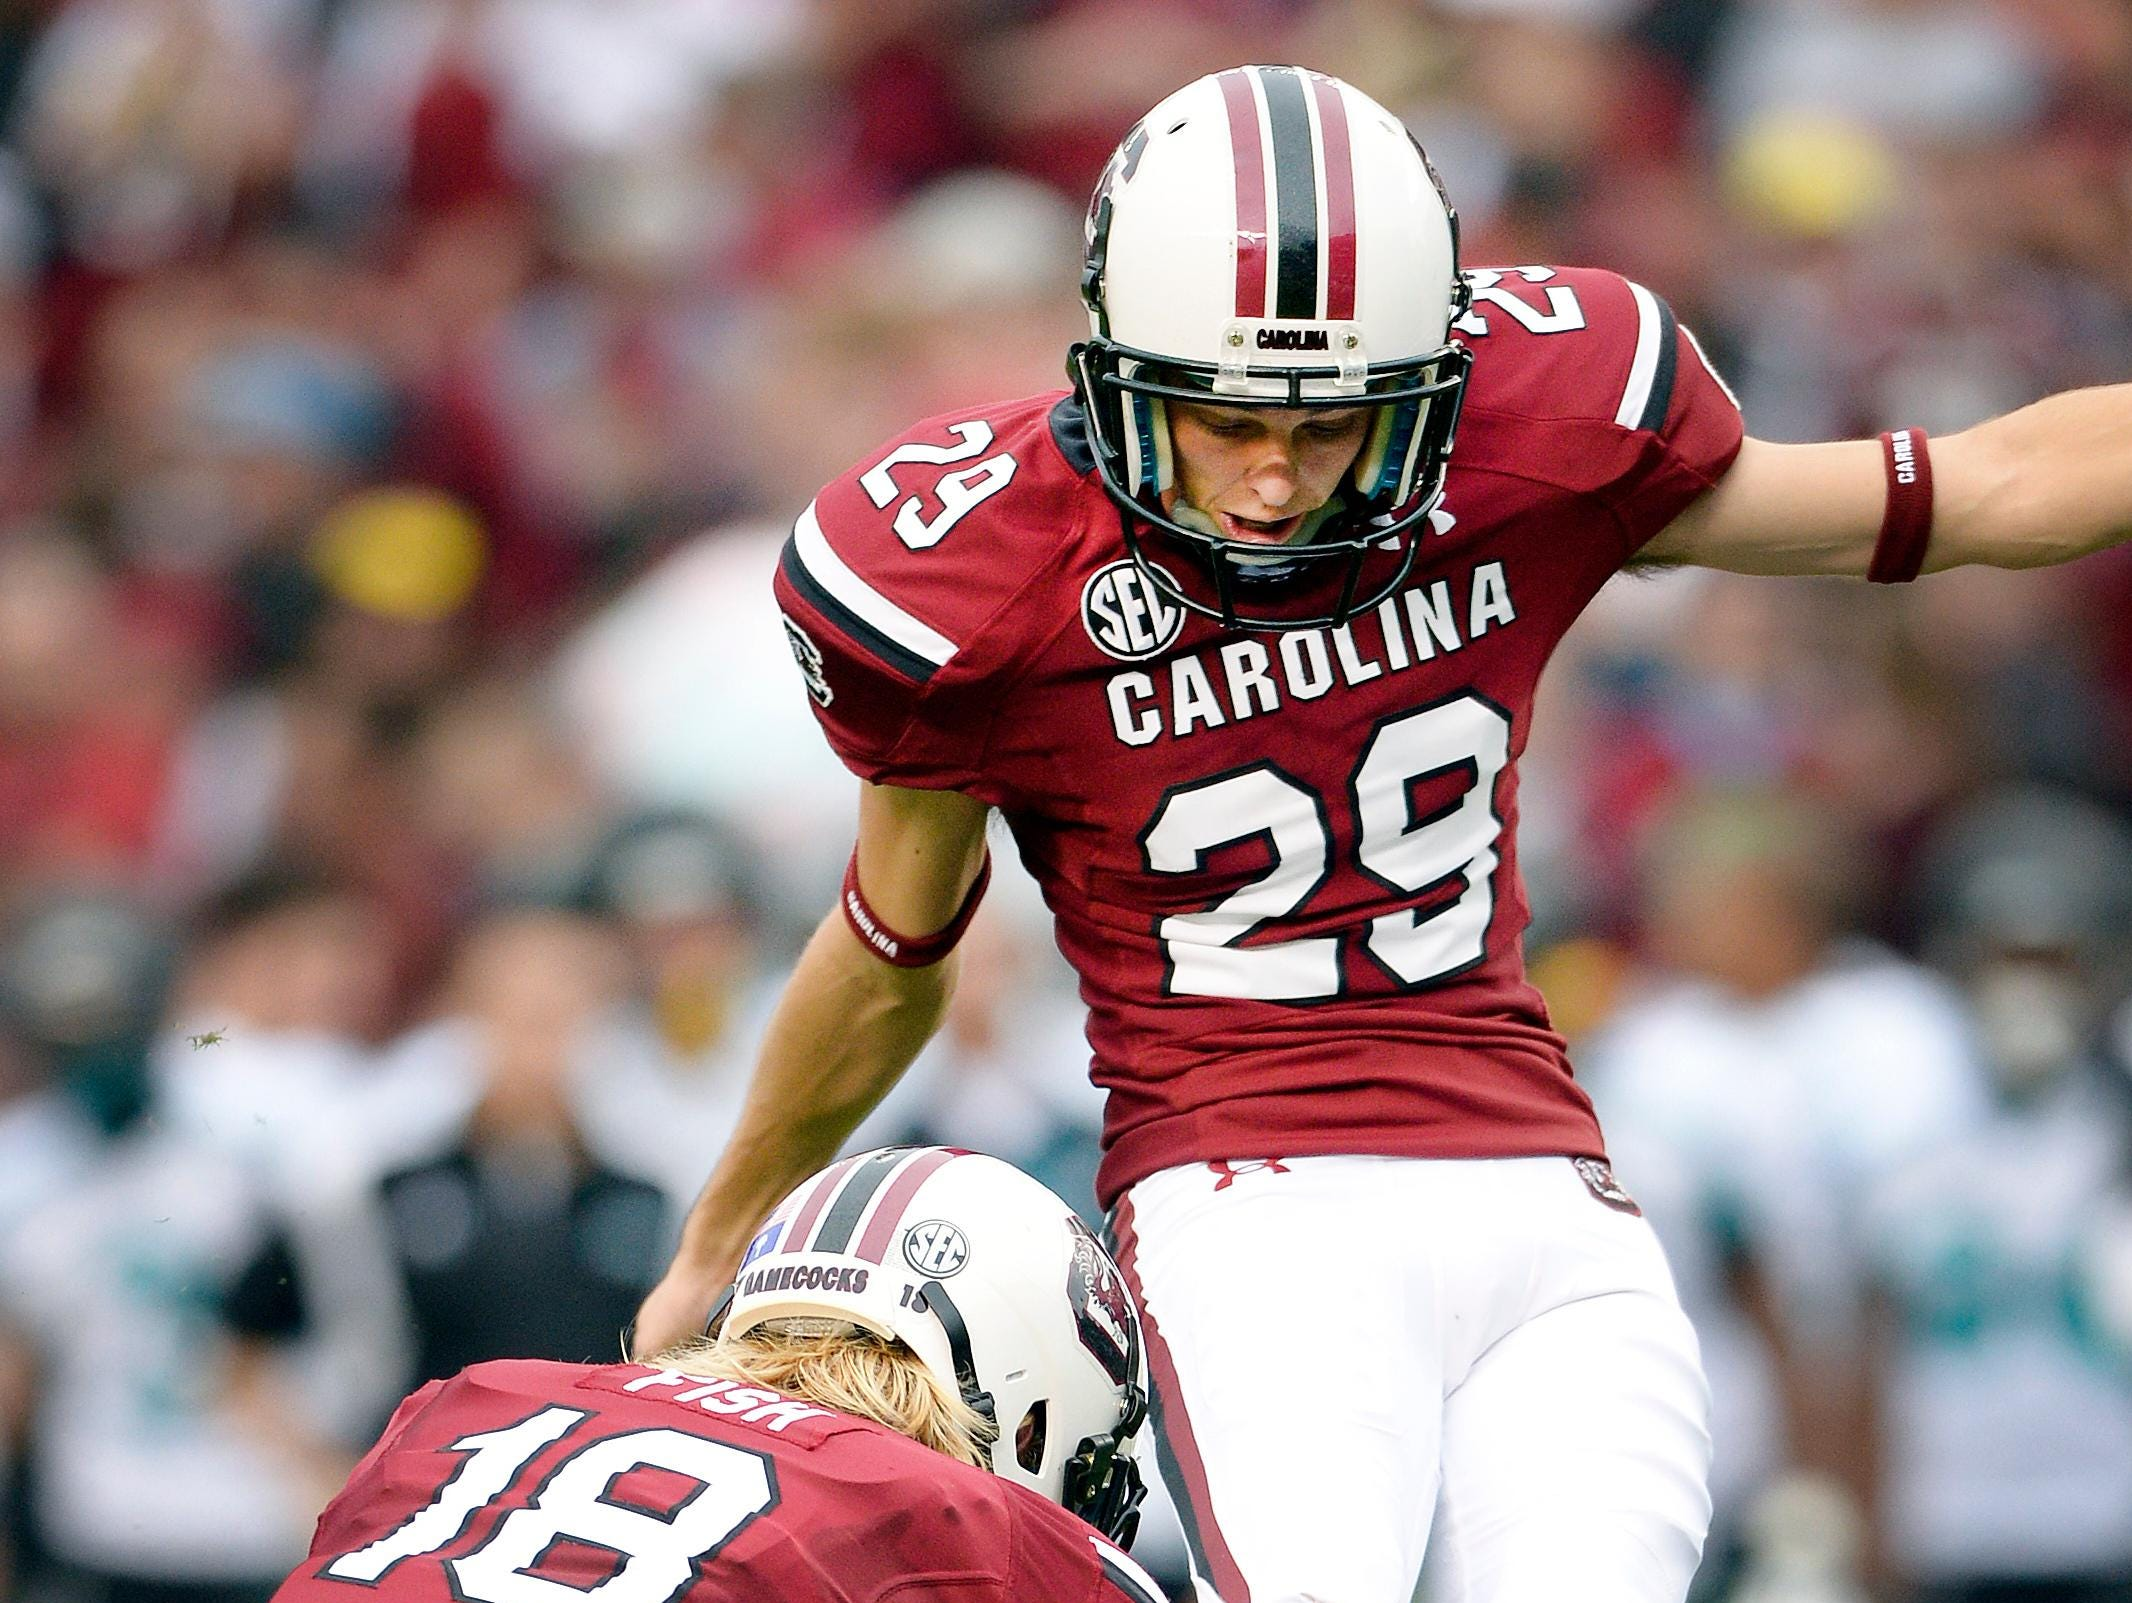 University of South Carolina kicker Elliott Fry (29) hasn't let diabetes prevent him from competing at the highest level of college sports and lets children with the disease know 'they can do anything they want, if they take care of themselves.'